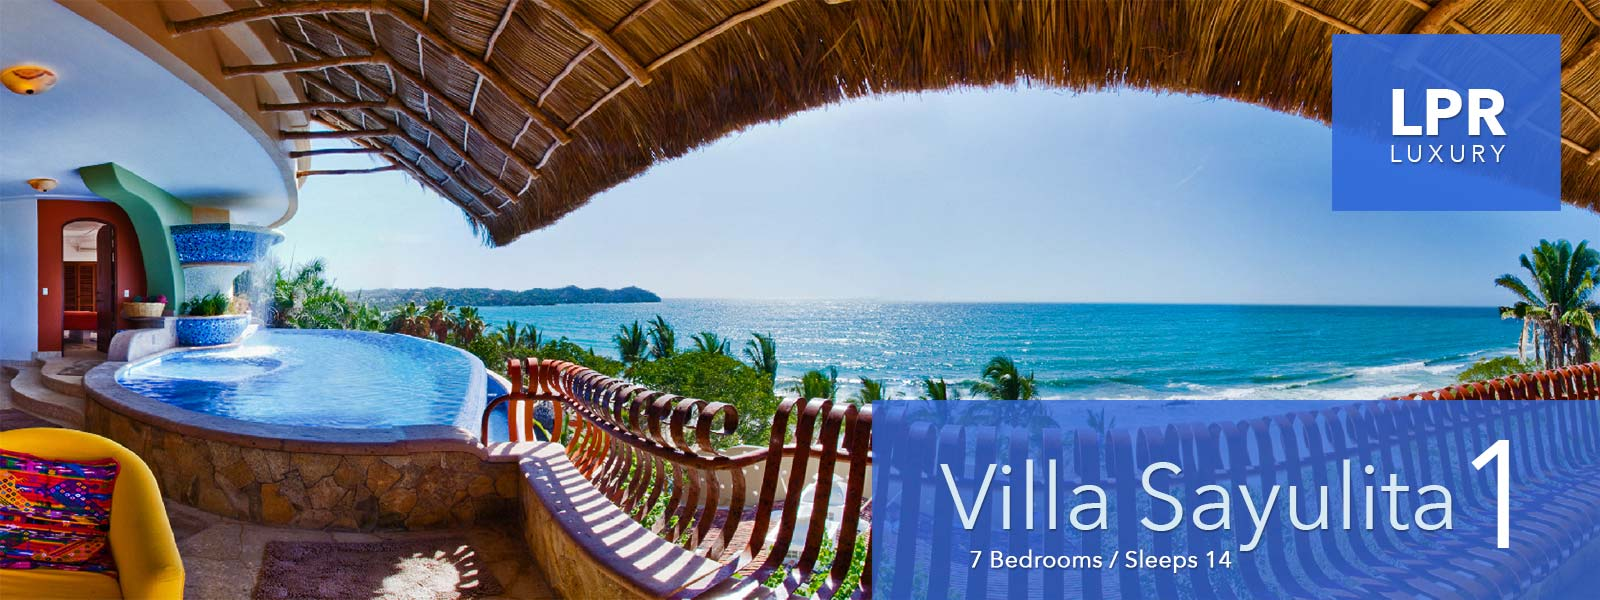 Villa sayulita 1 secret puerto vallarta beachfront for Villas sayulita